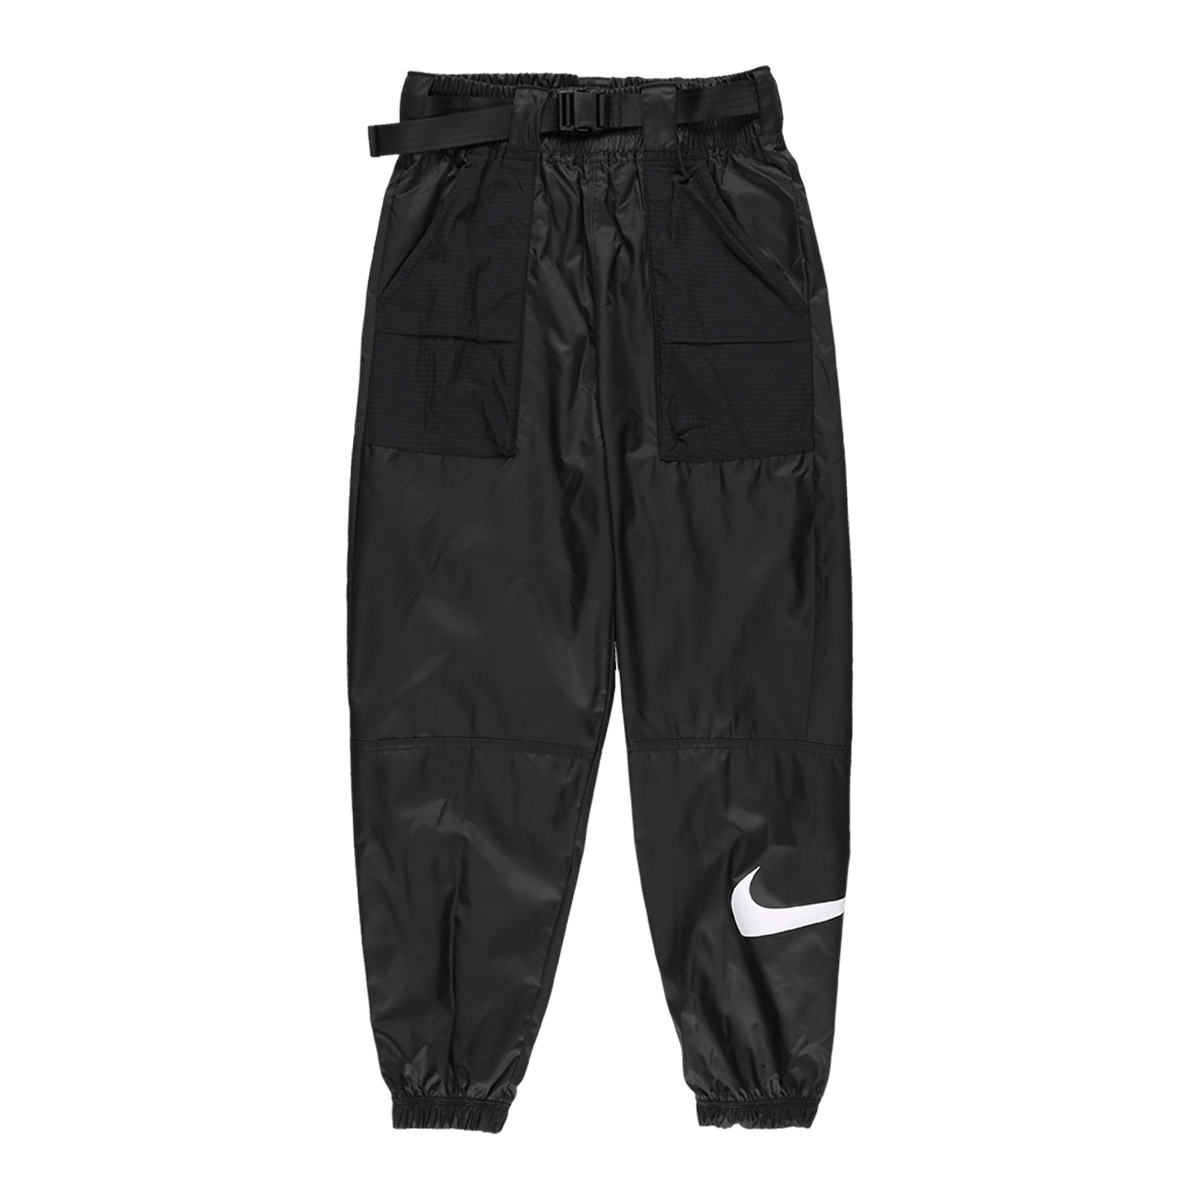 Nike Women's Sweatpants  - XHIBITION